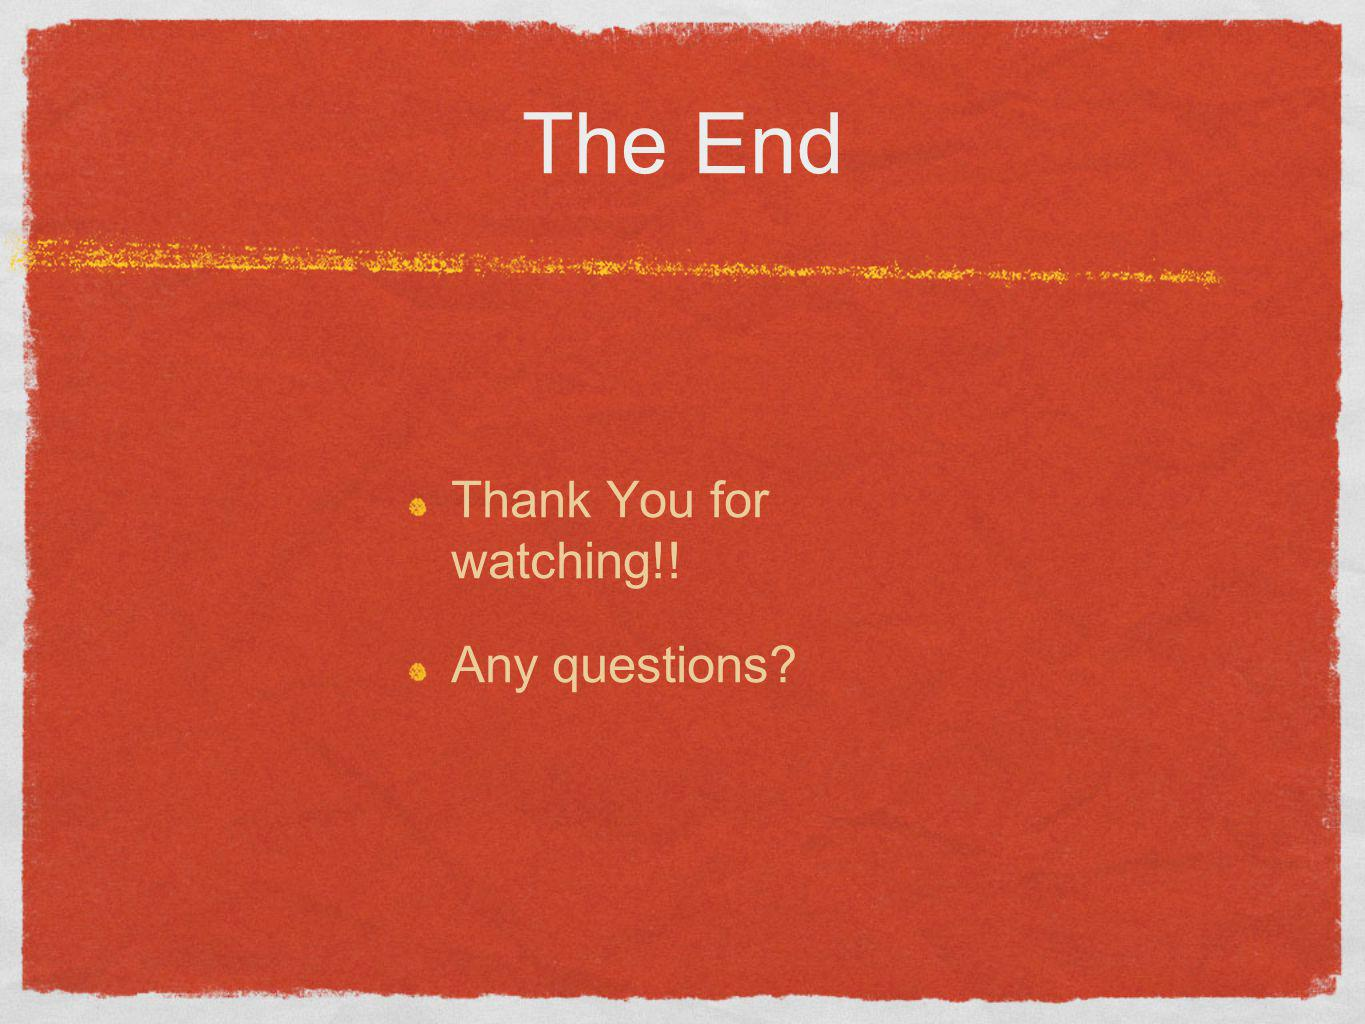 The End Thank You for watching!! Any questions?